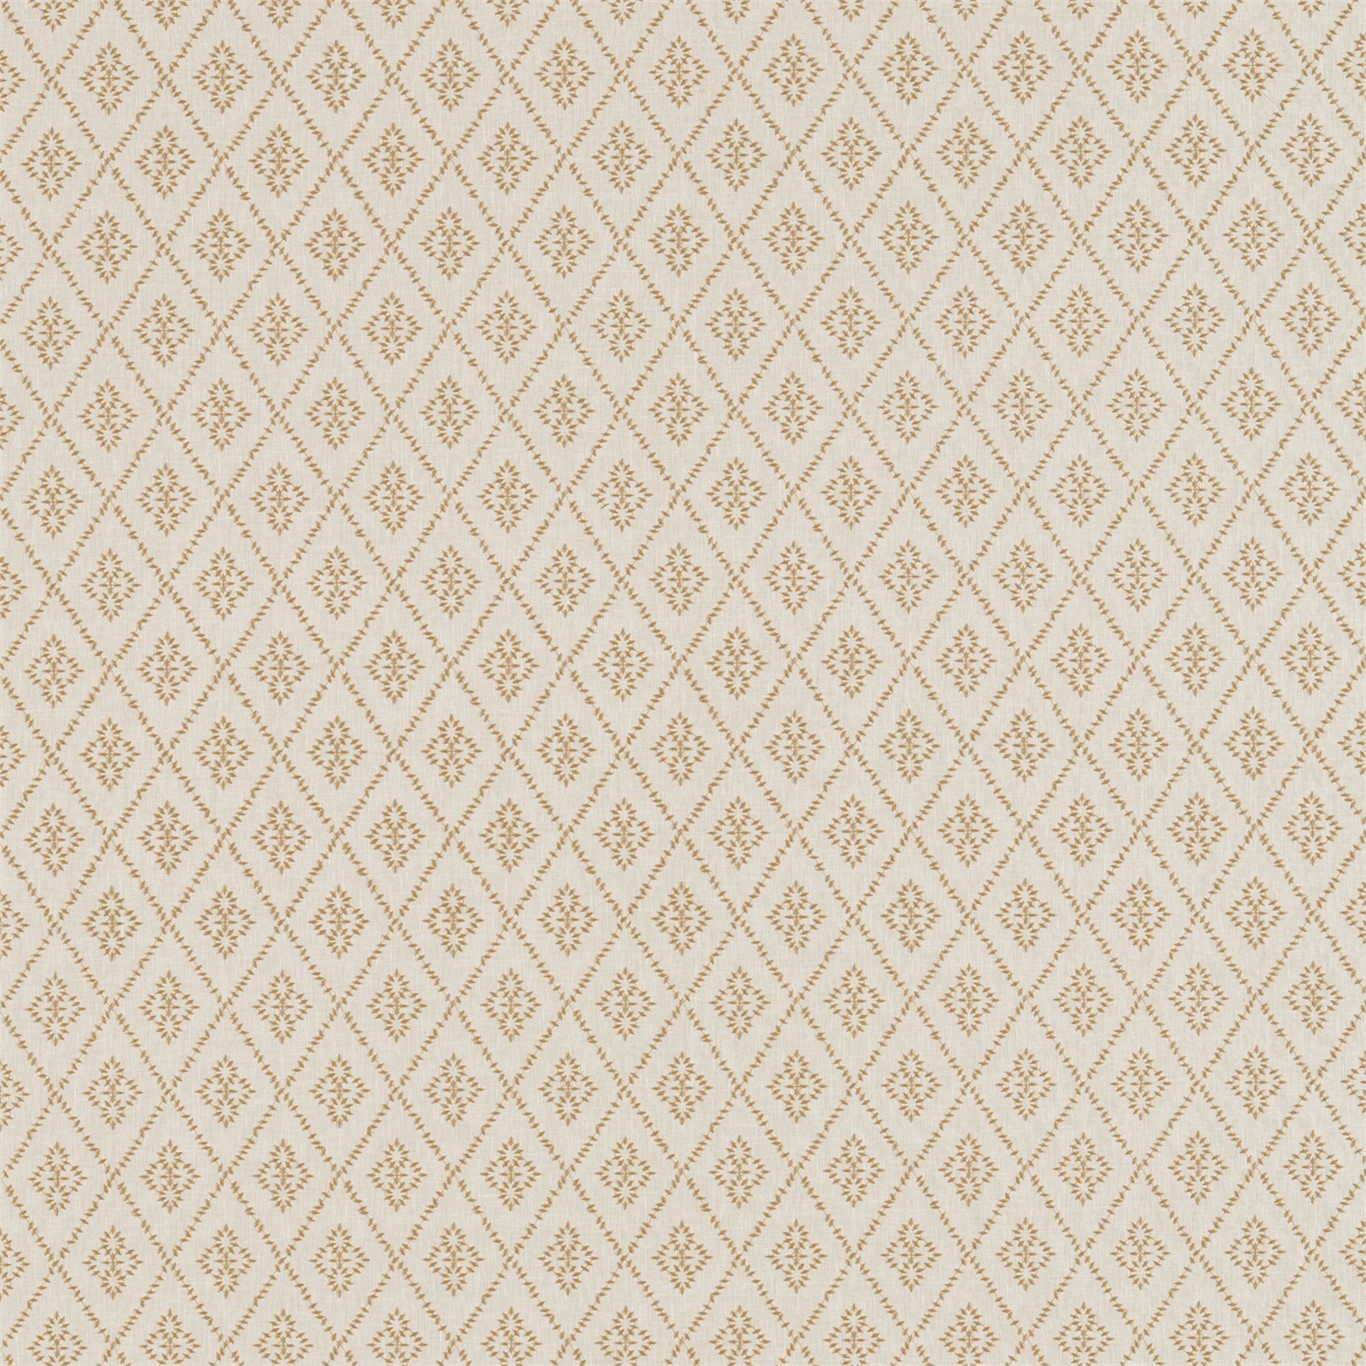 Image of Sanderson Home Caraway Barley Fabric 236428